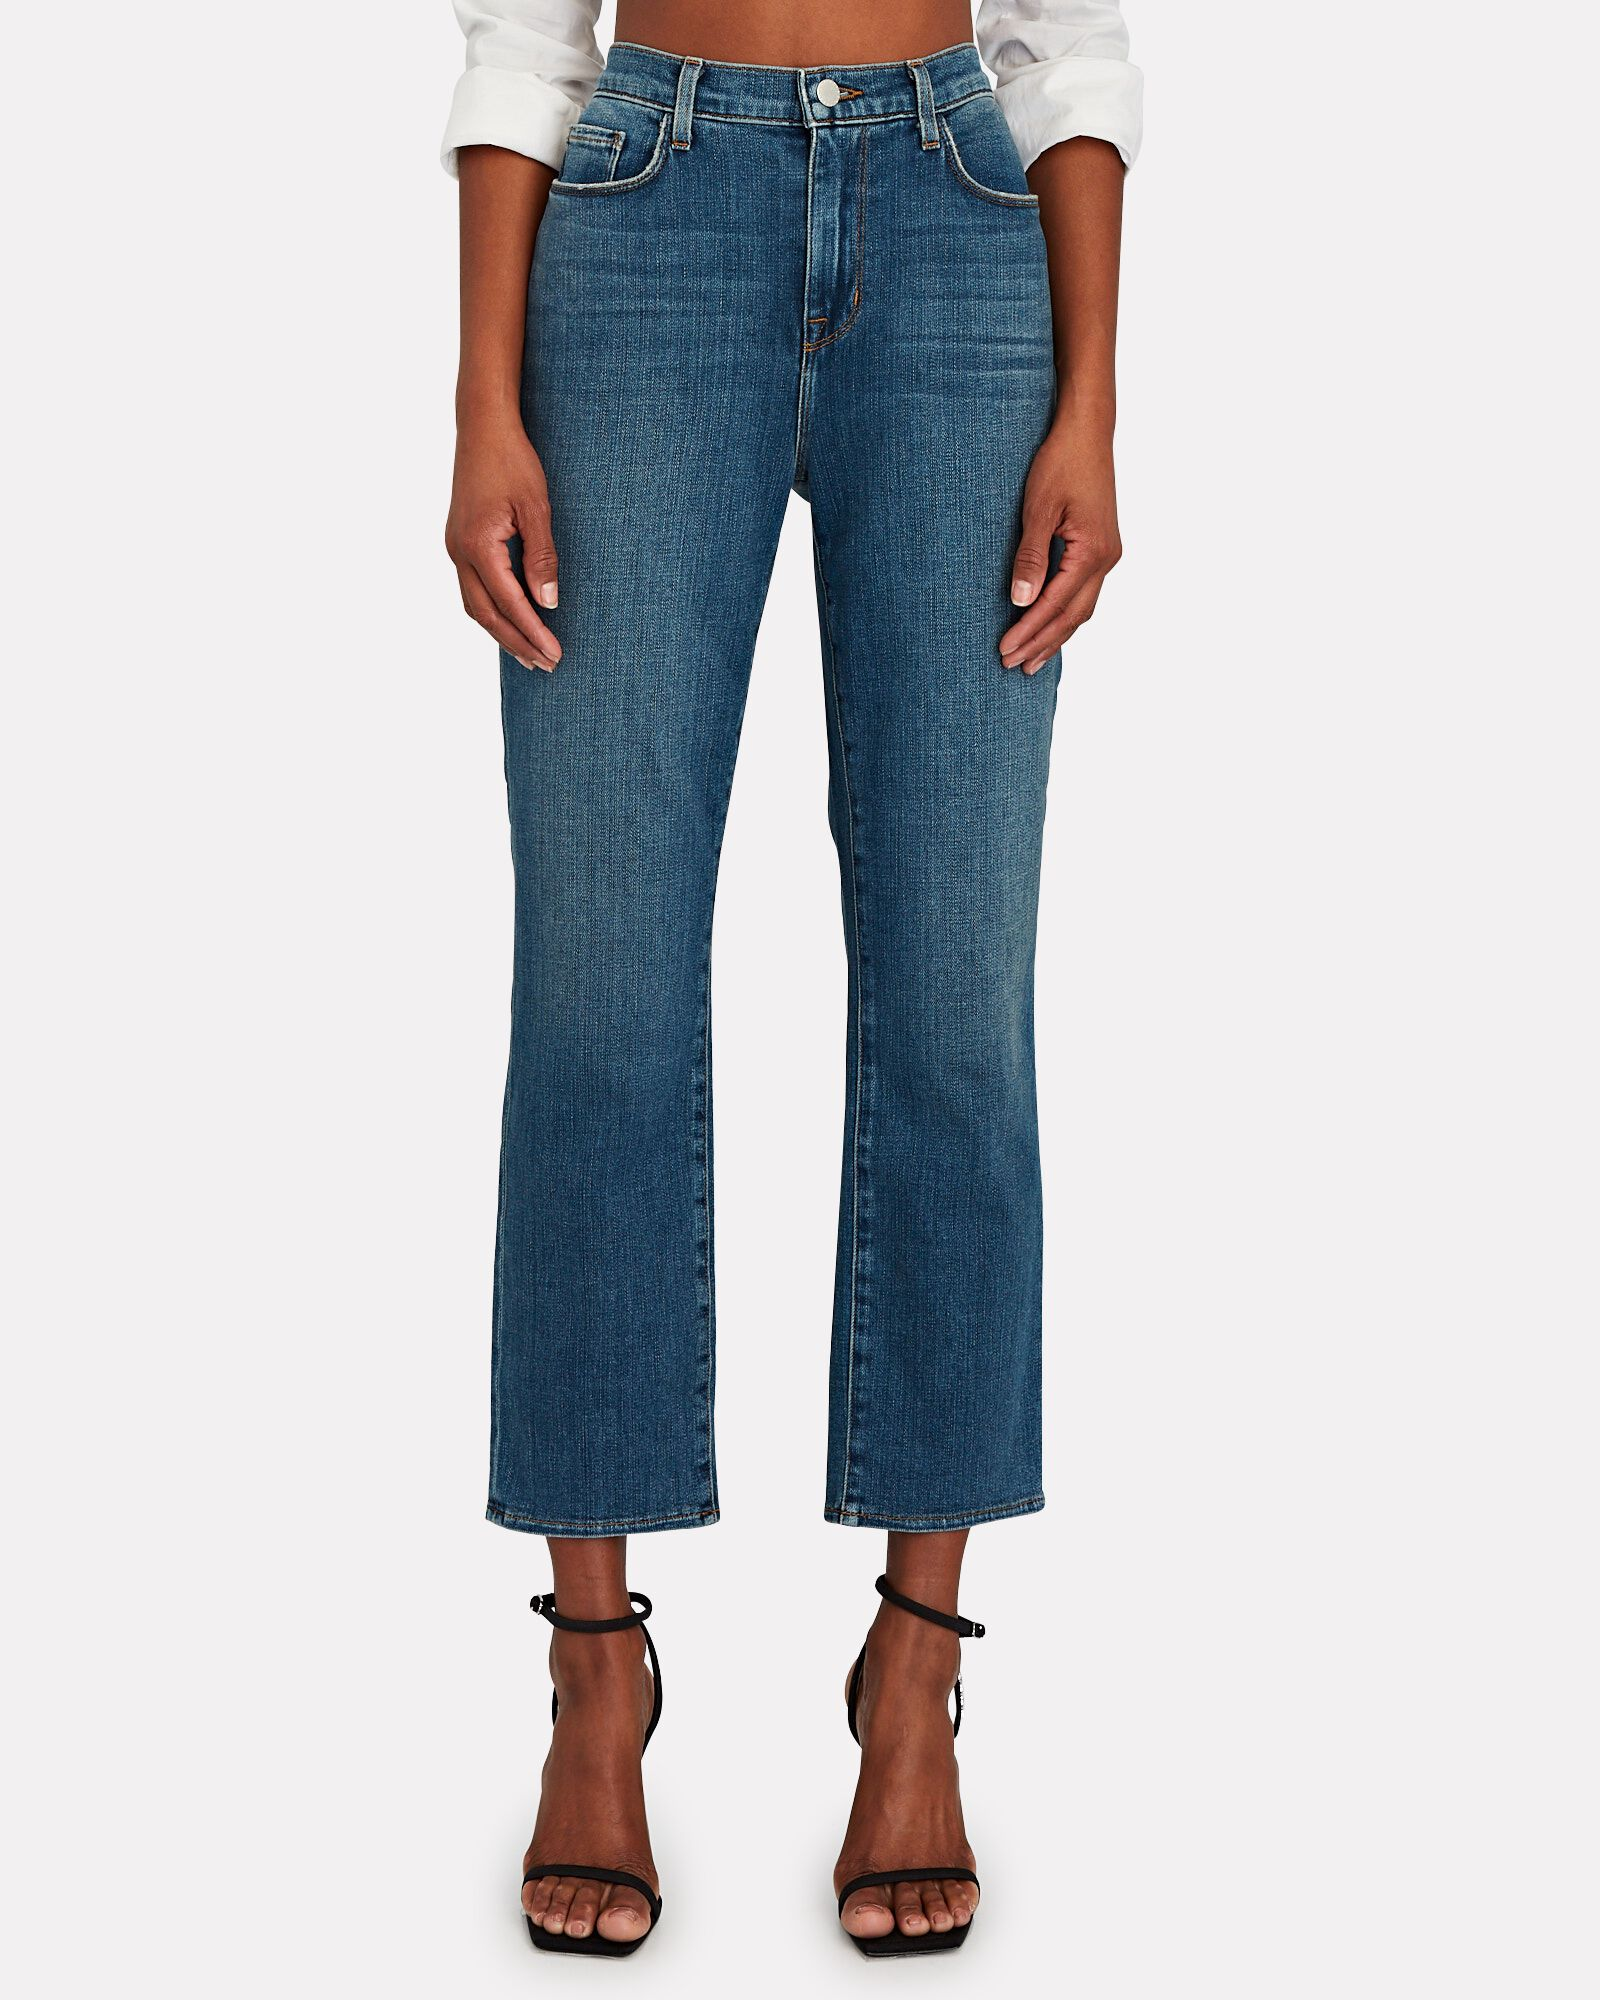 Shane Straight-Leg Jeans, AUTHENTIQUE, hi-res